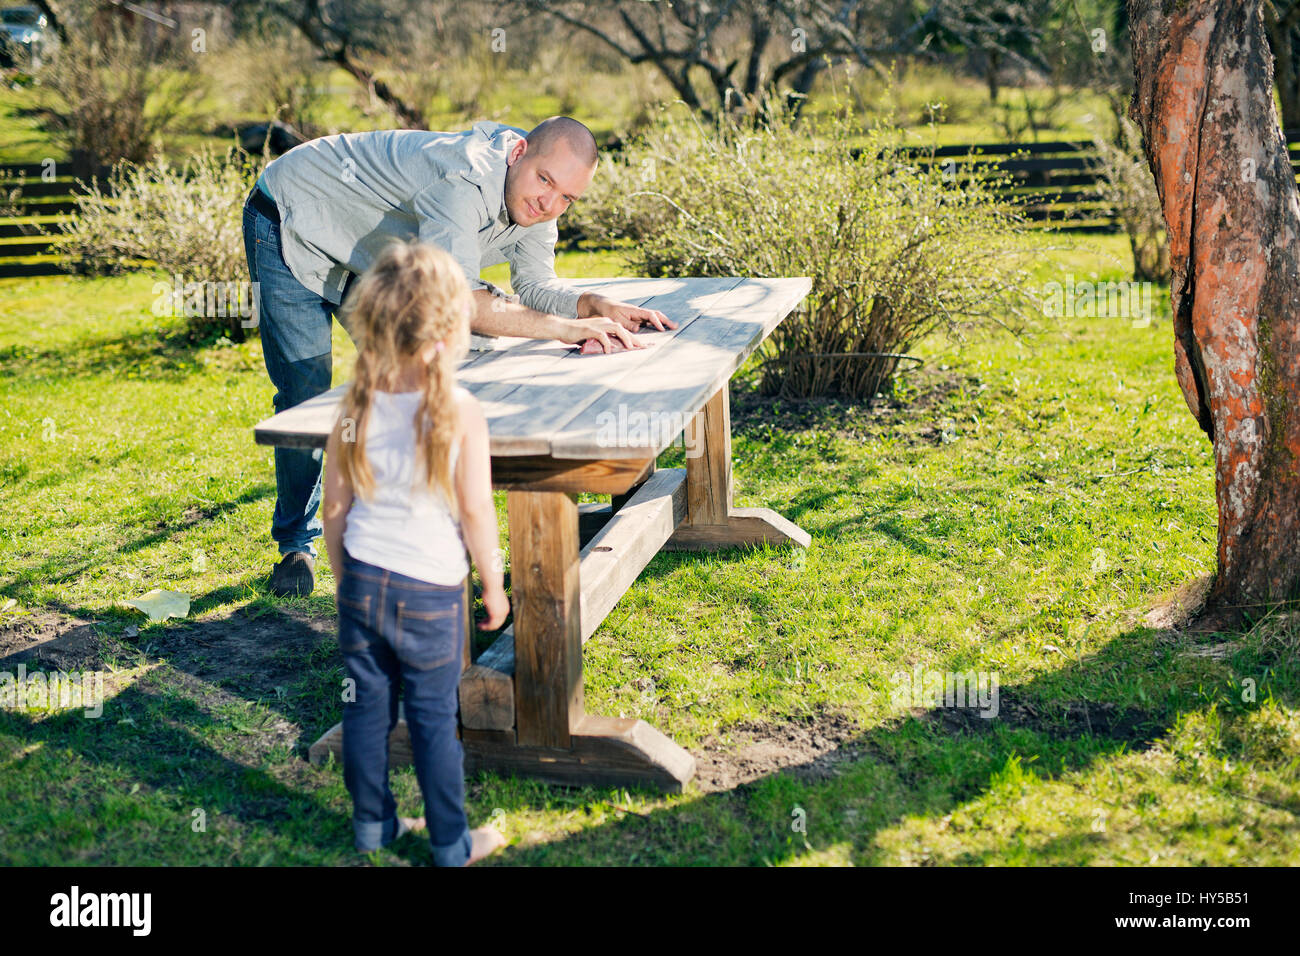 Finland, Paijat-Hame, Heinola, Father with daughter (4-5) polishing wooden table in garden - Stock Image